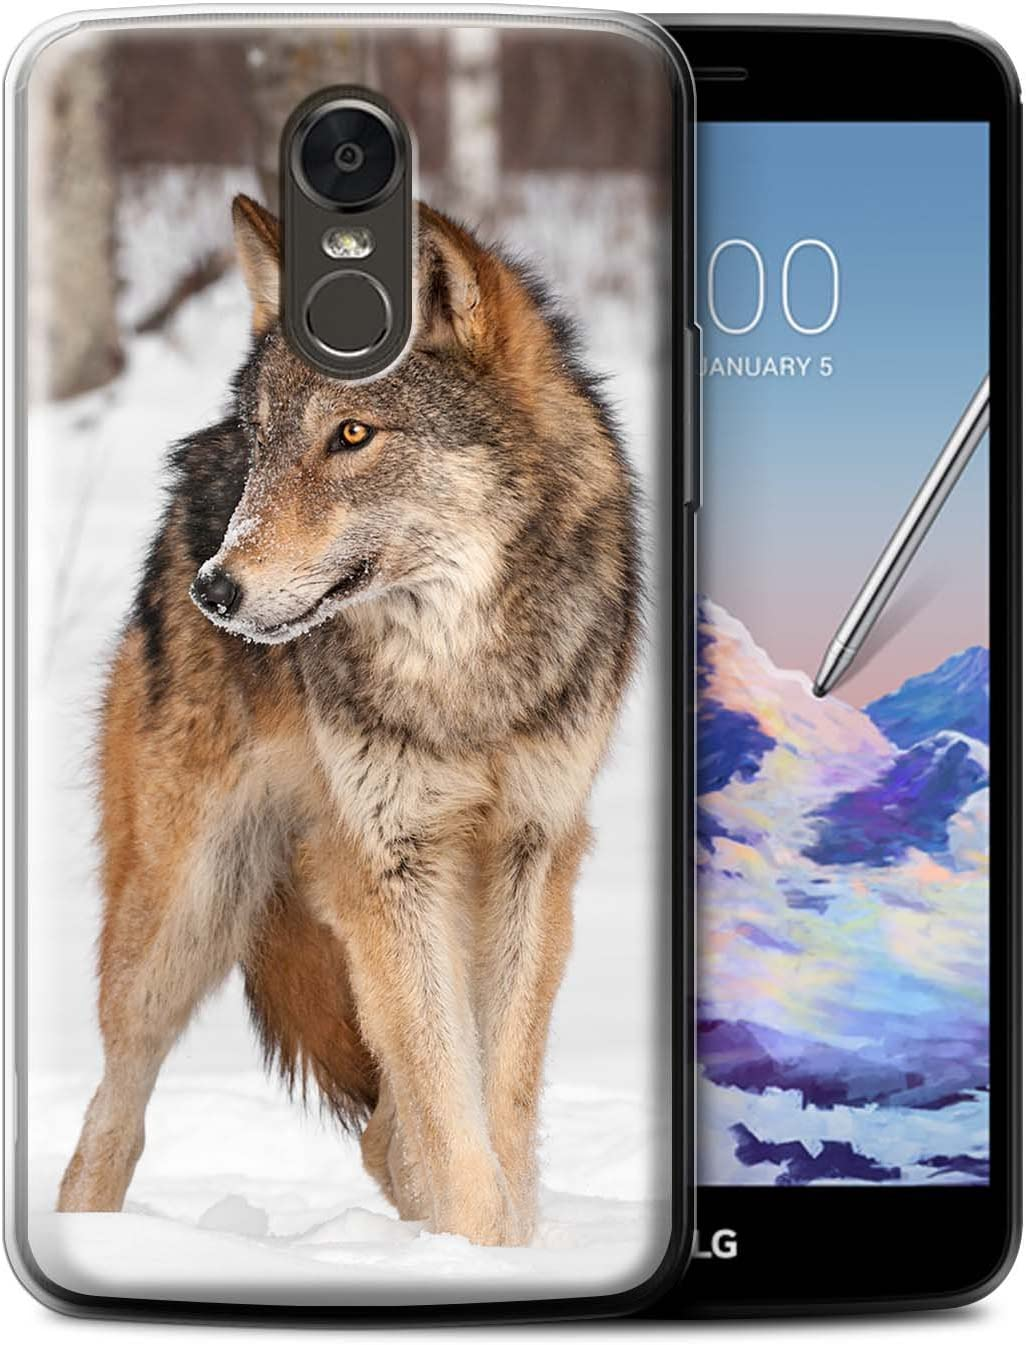 Phone Case for LG Stylus 3/Stylo 3/K10 Pro Wildlife Animals Wolf Design Transparent Clear Ultra Soft Flexi Silicone Gel/TPU Bumper Cover